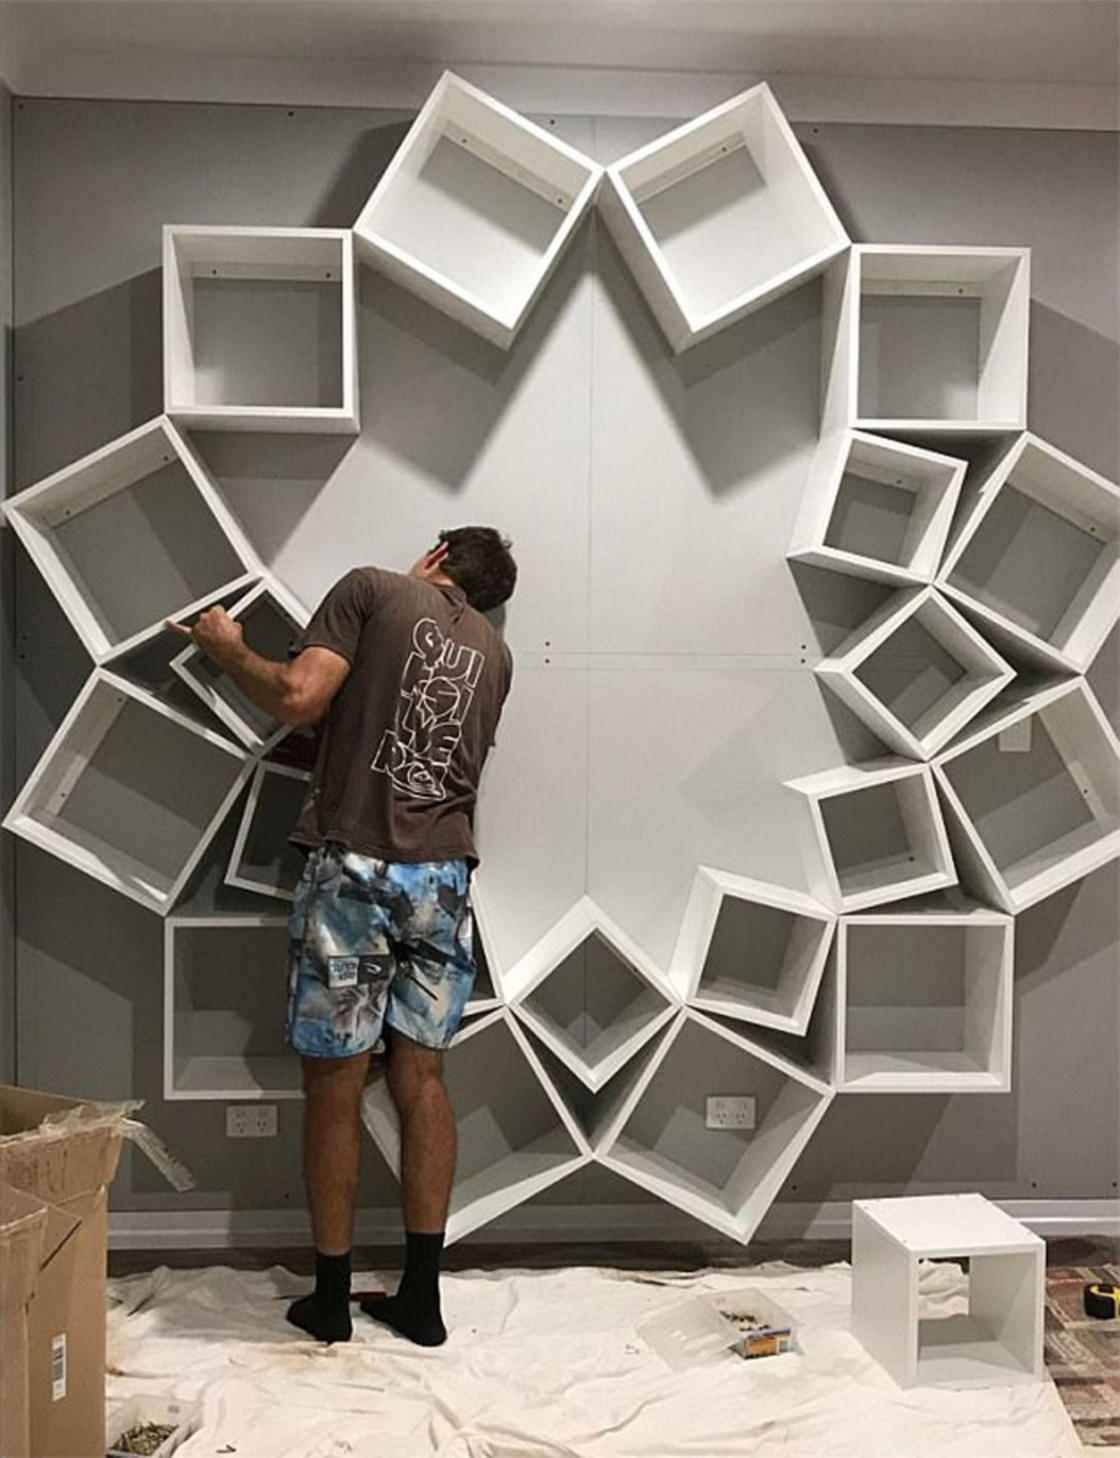 Flower Bookshelf – This couple designed an amazing DIY project